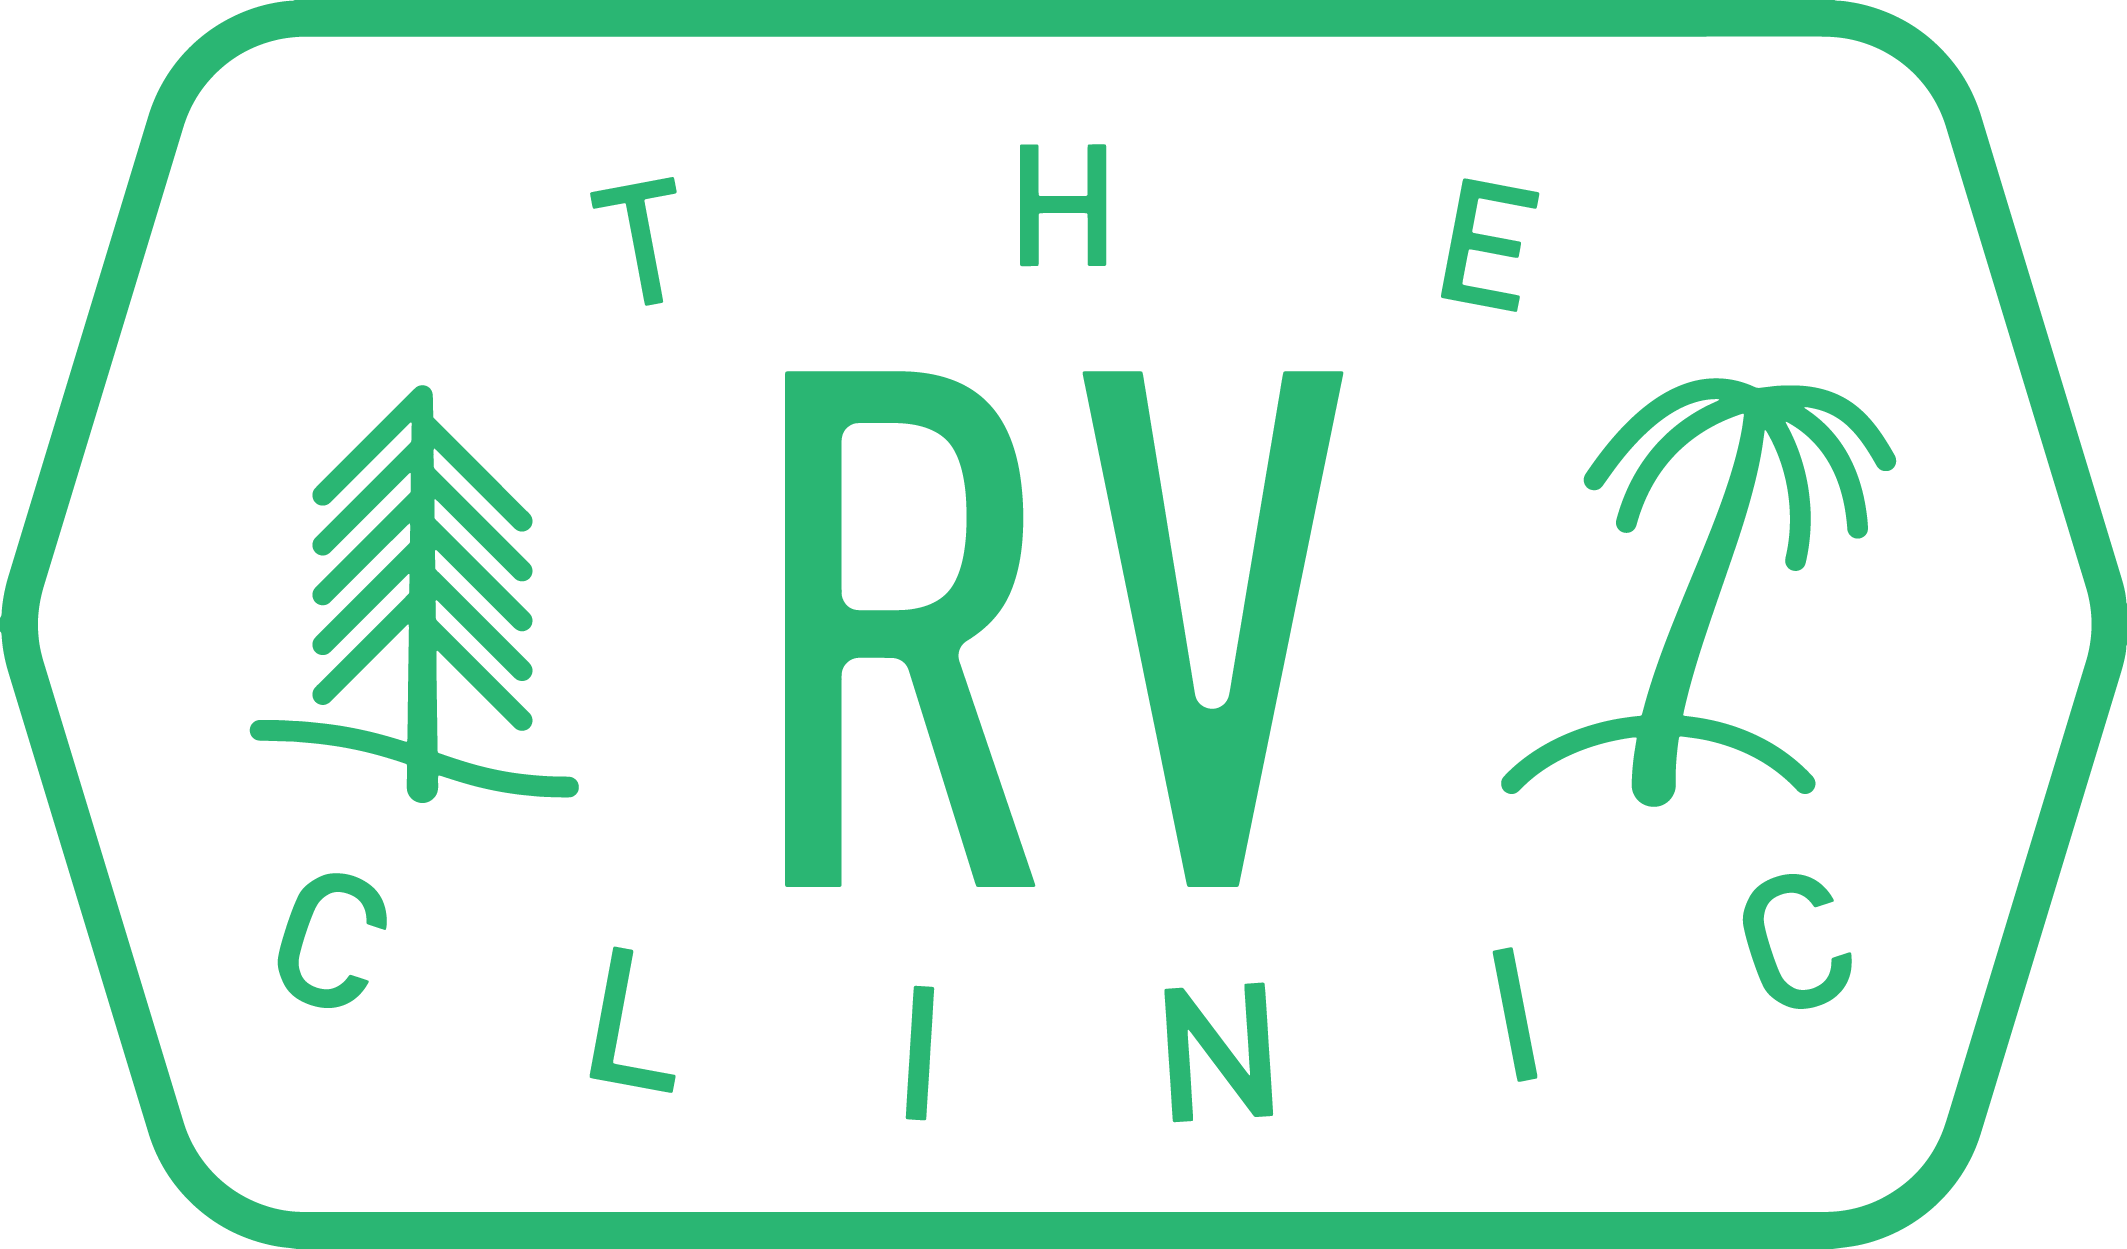 The RV Clinic